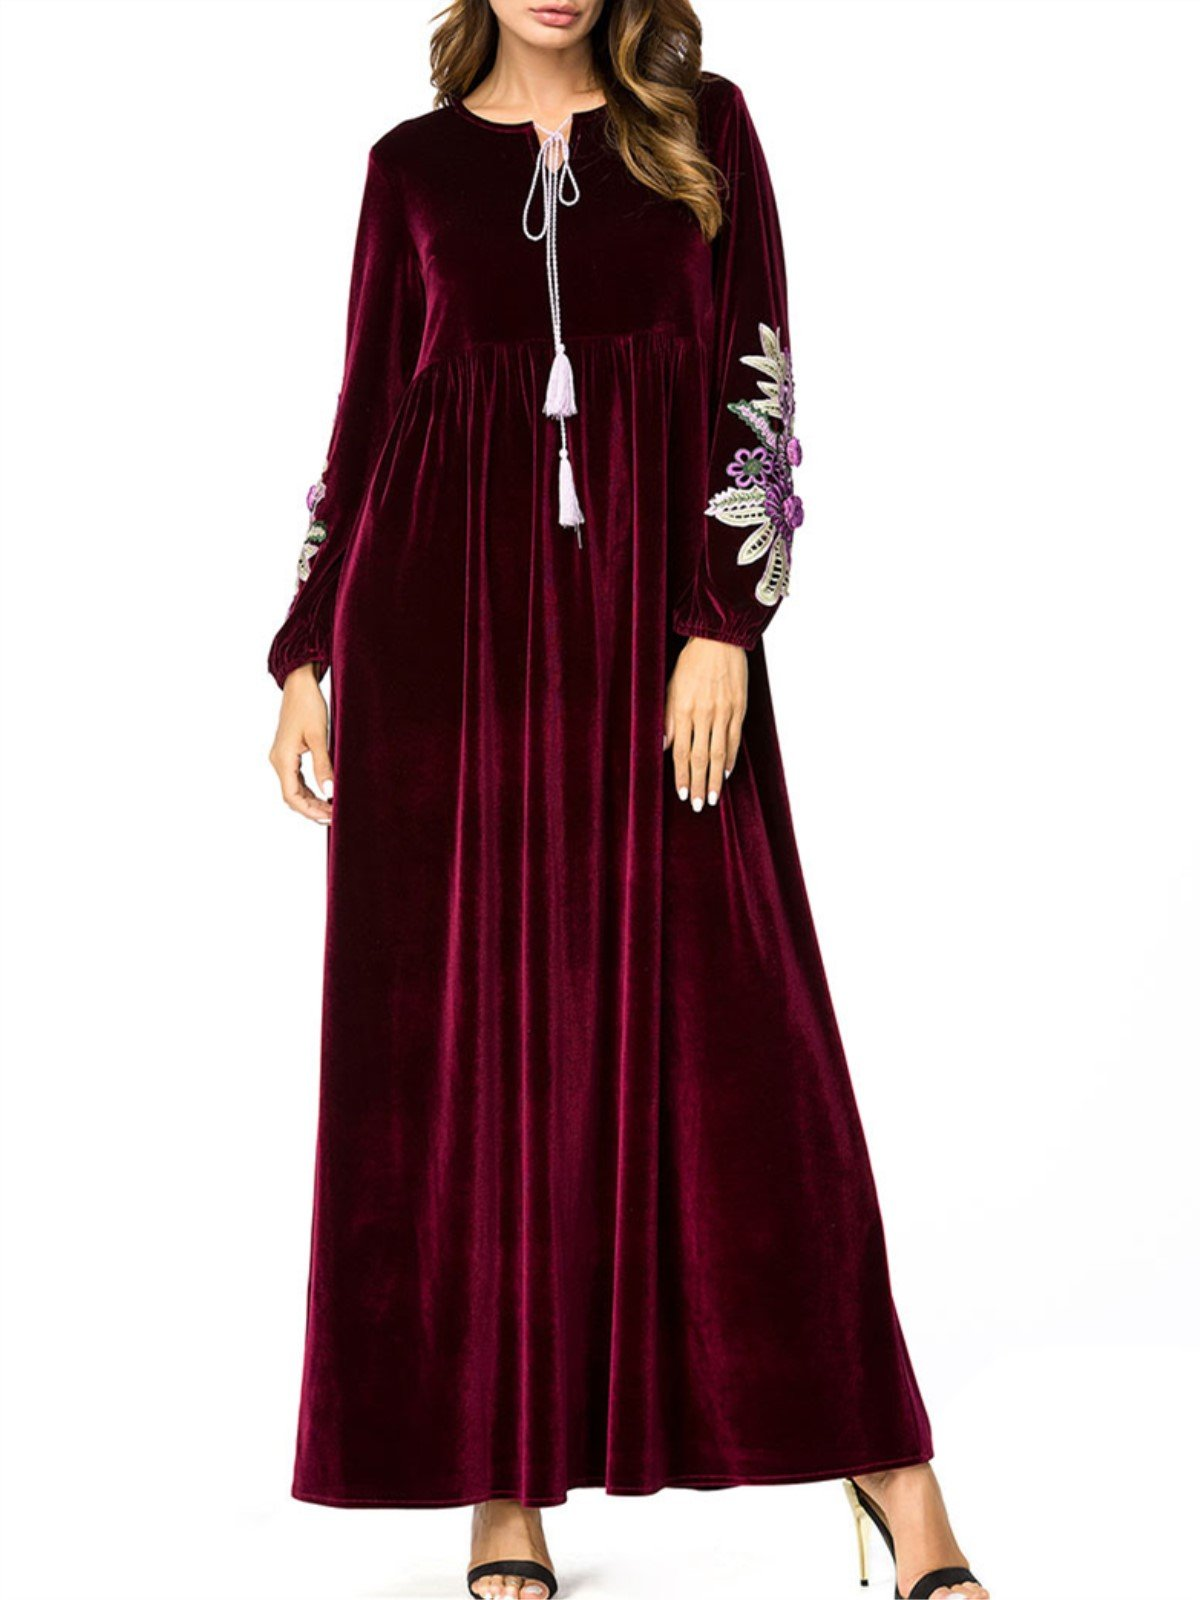 Plus Size Burgundy Floral Embroidered Dress